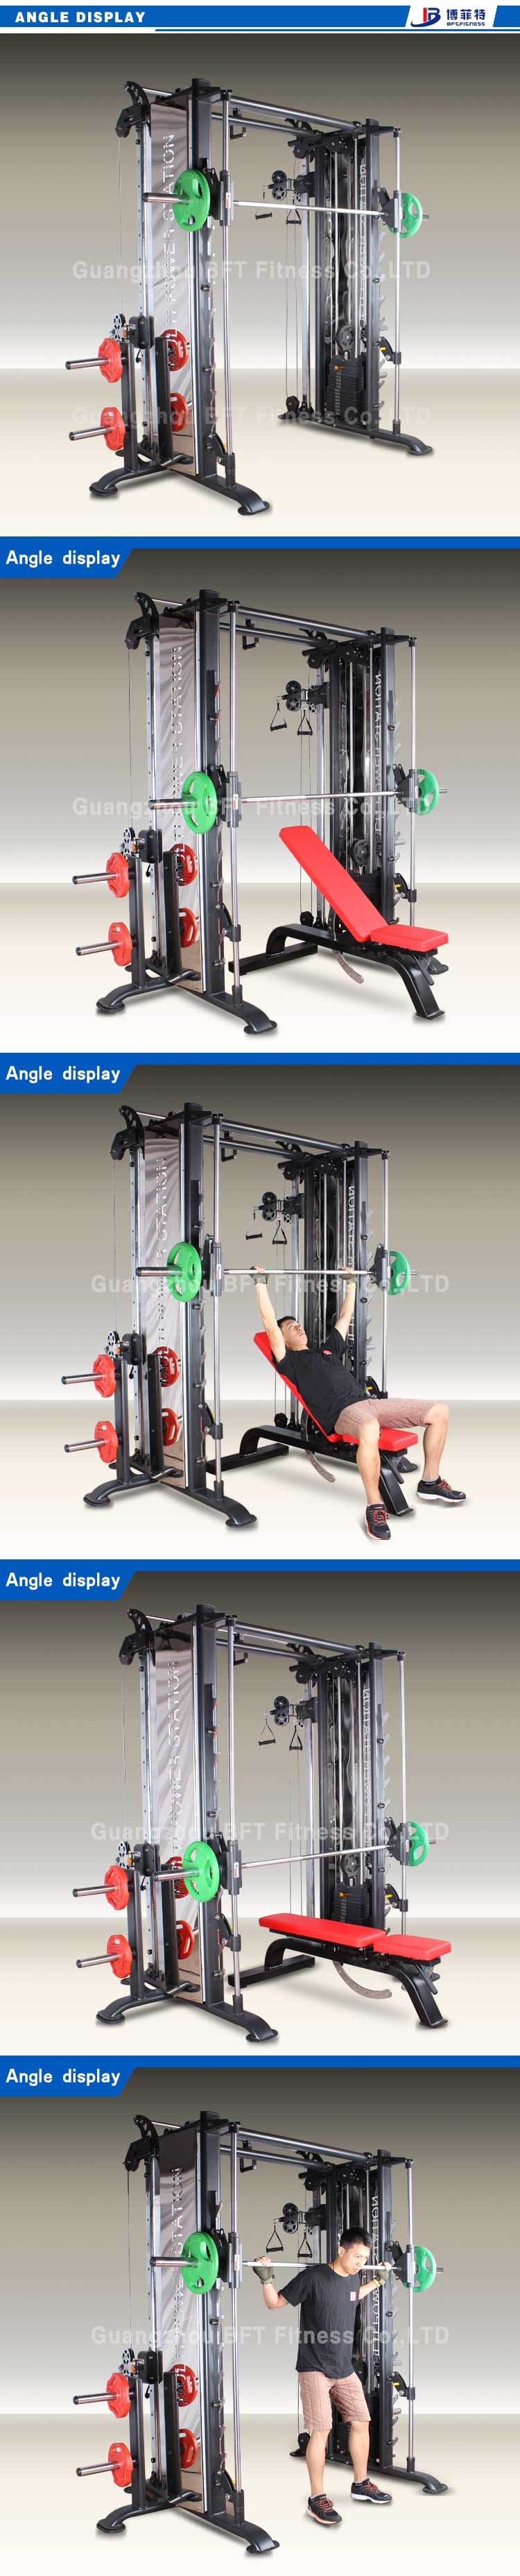 Multifunction strength training smith